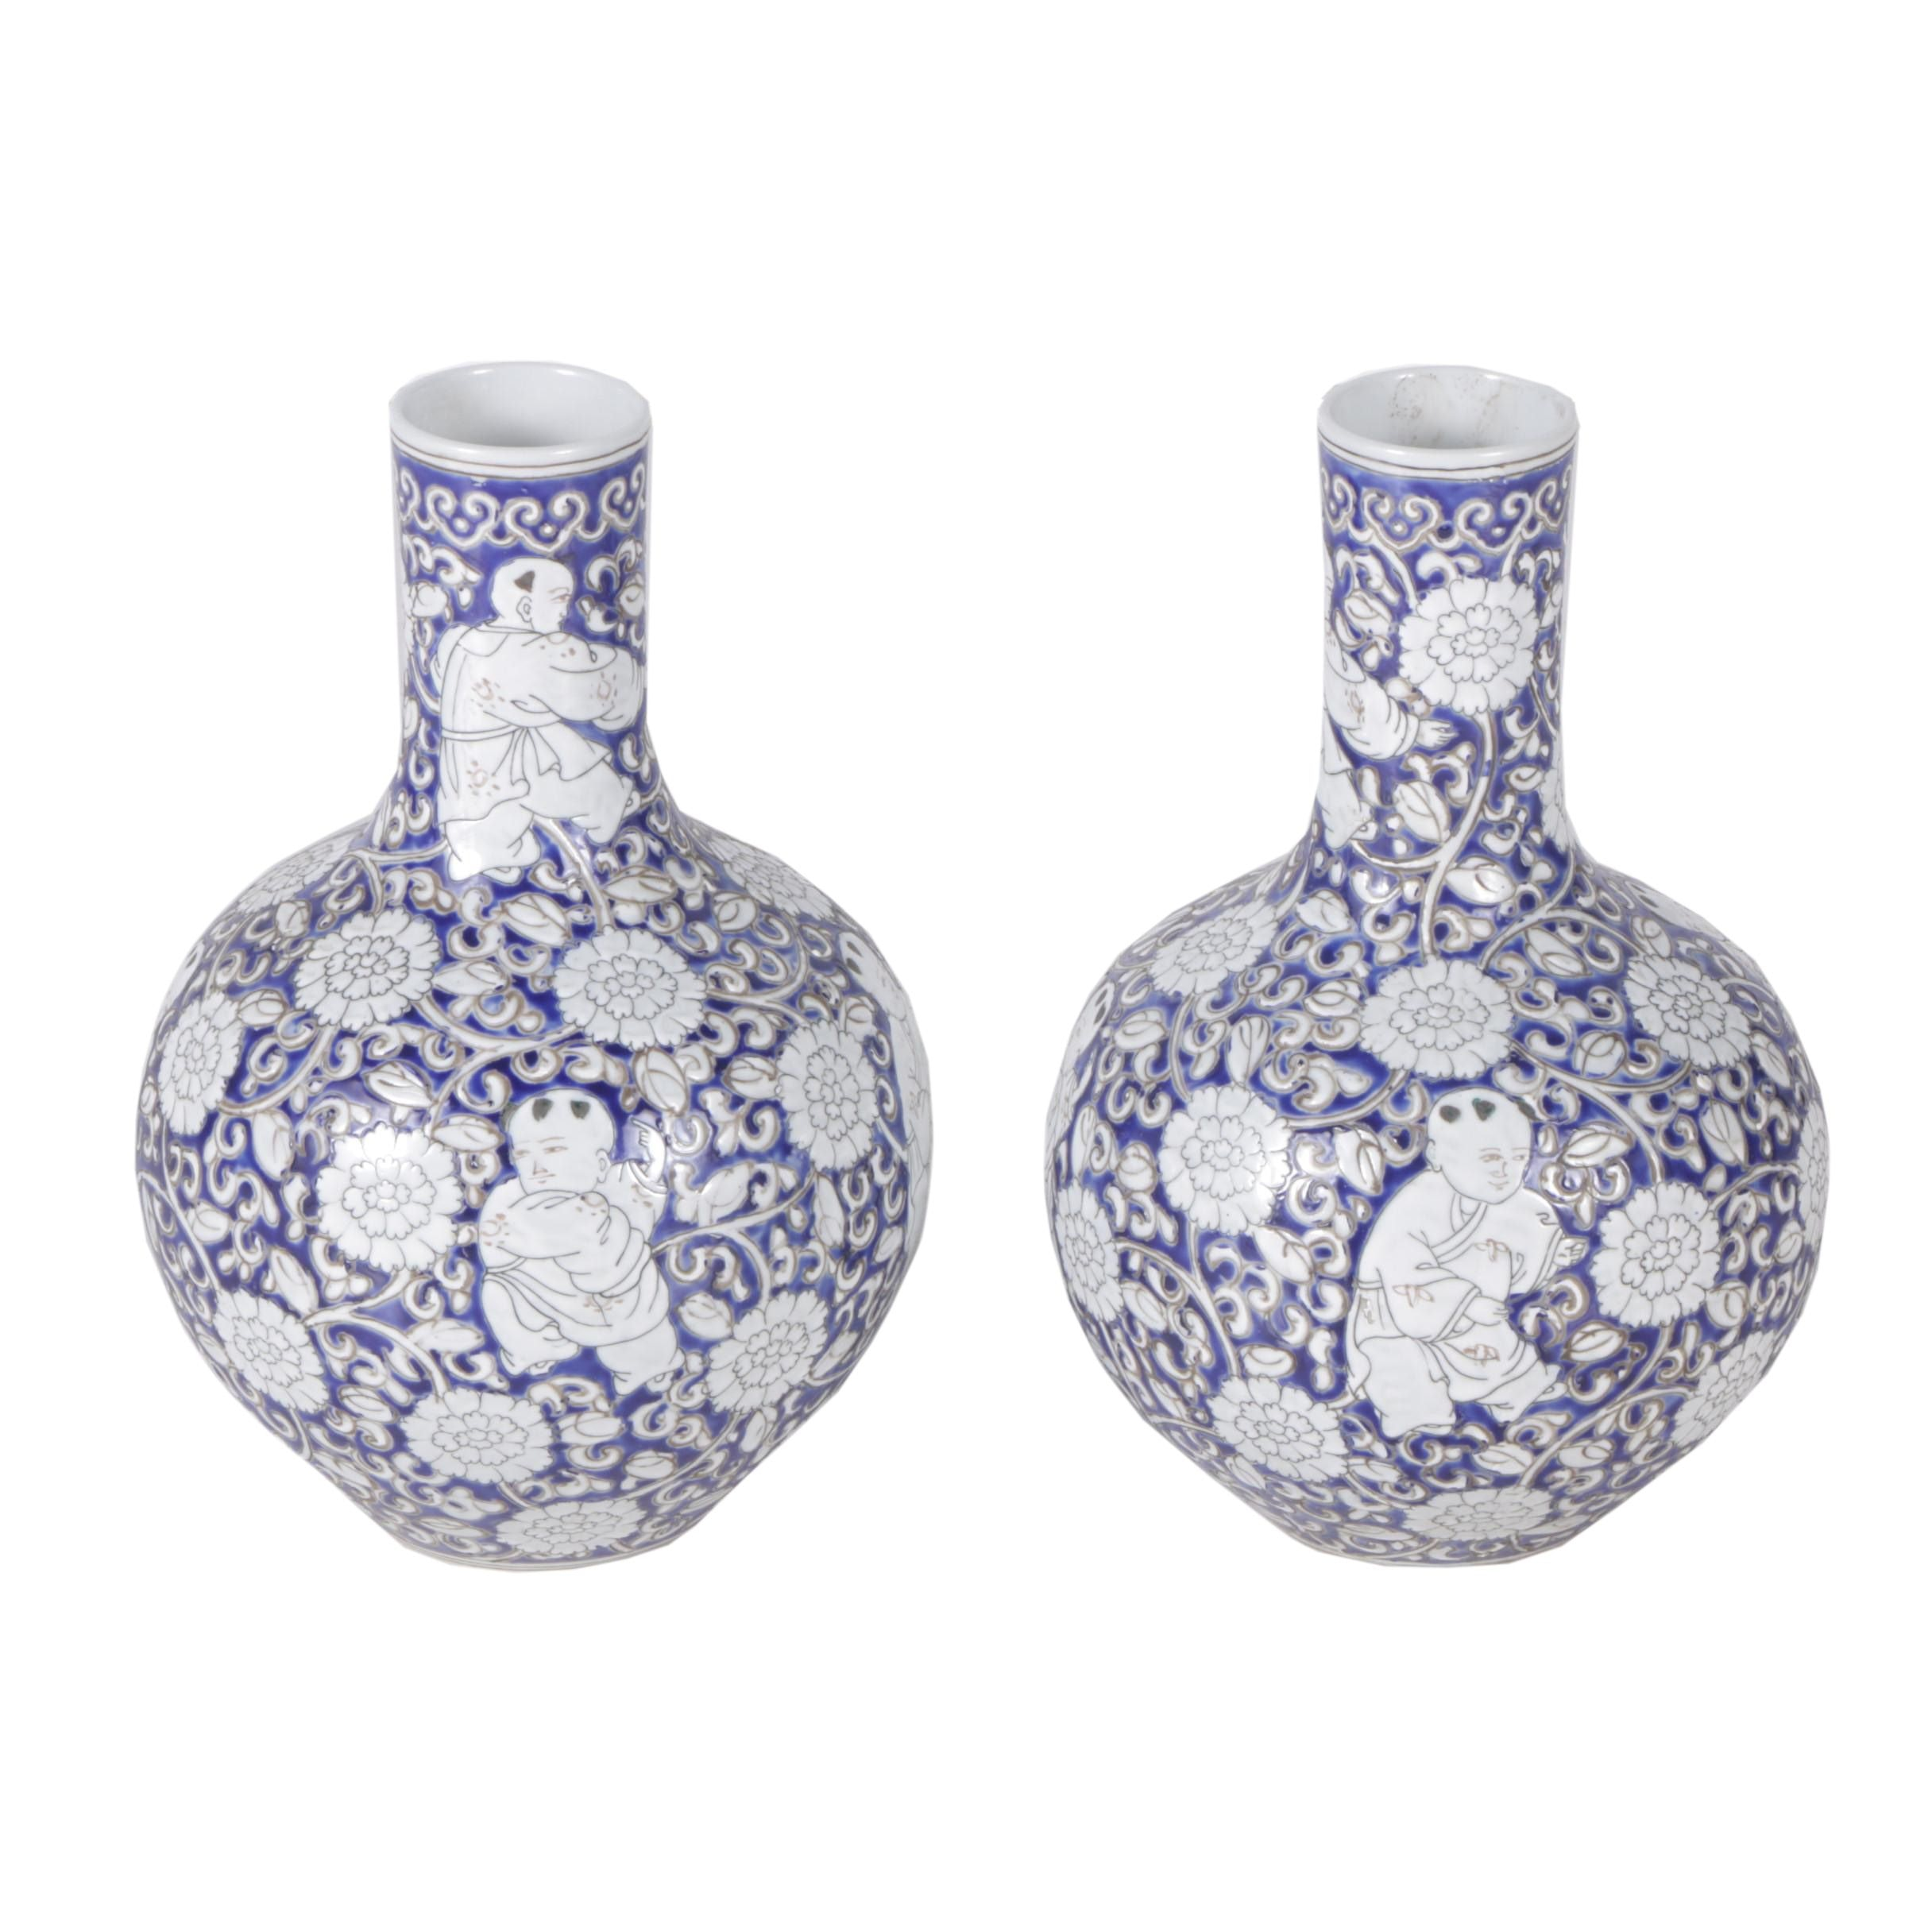 Chinese Blue and White Floral Vases